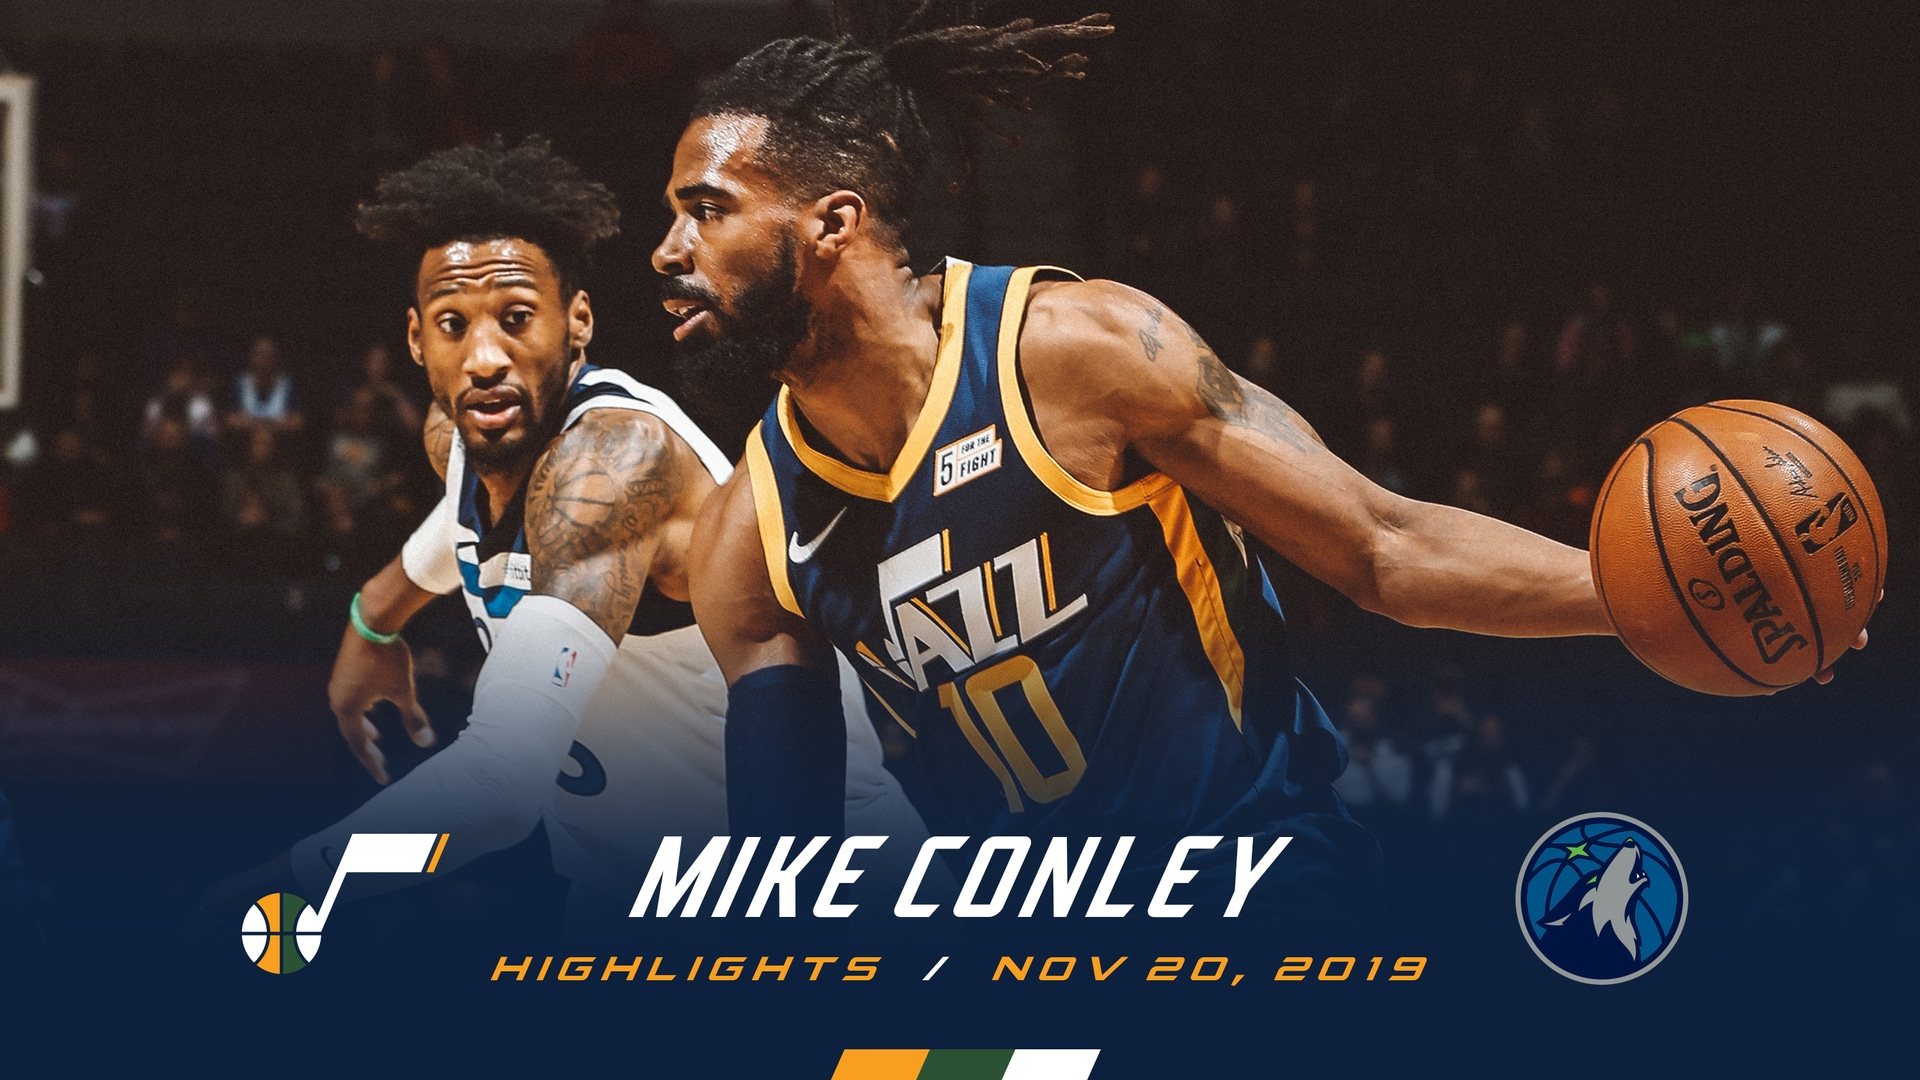 Highlights: Mike Conley—16 points, 8 assists